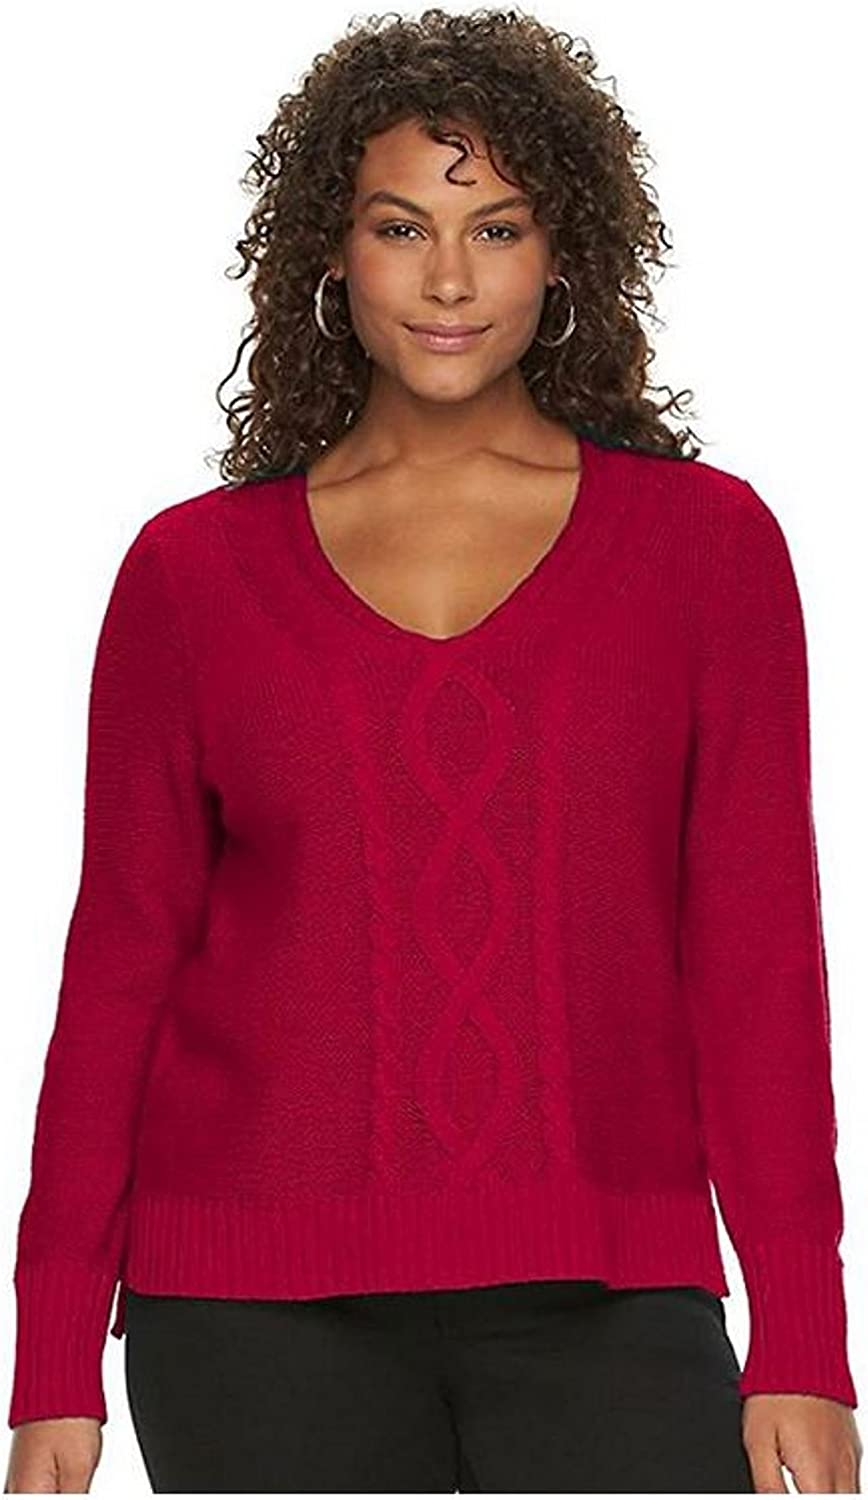 Chaps Women's Plus Size Cable-Knit V-Neck Long Sleeve Sweater